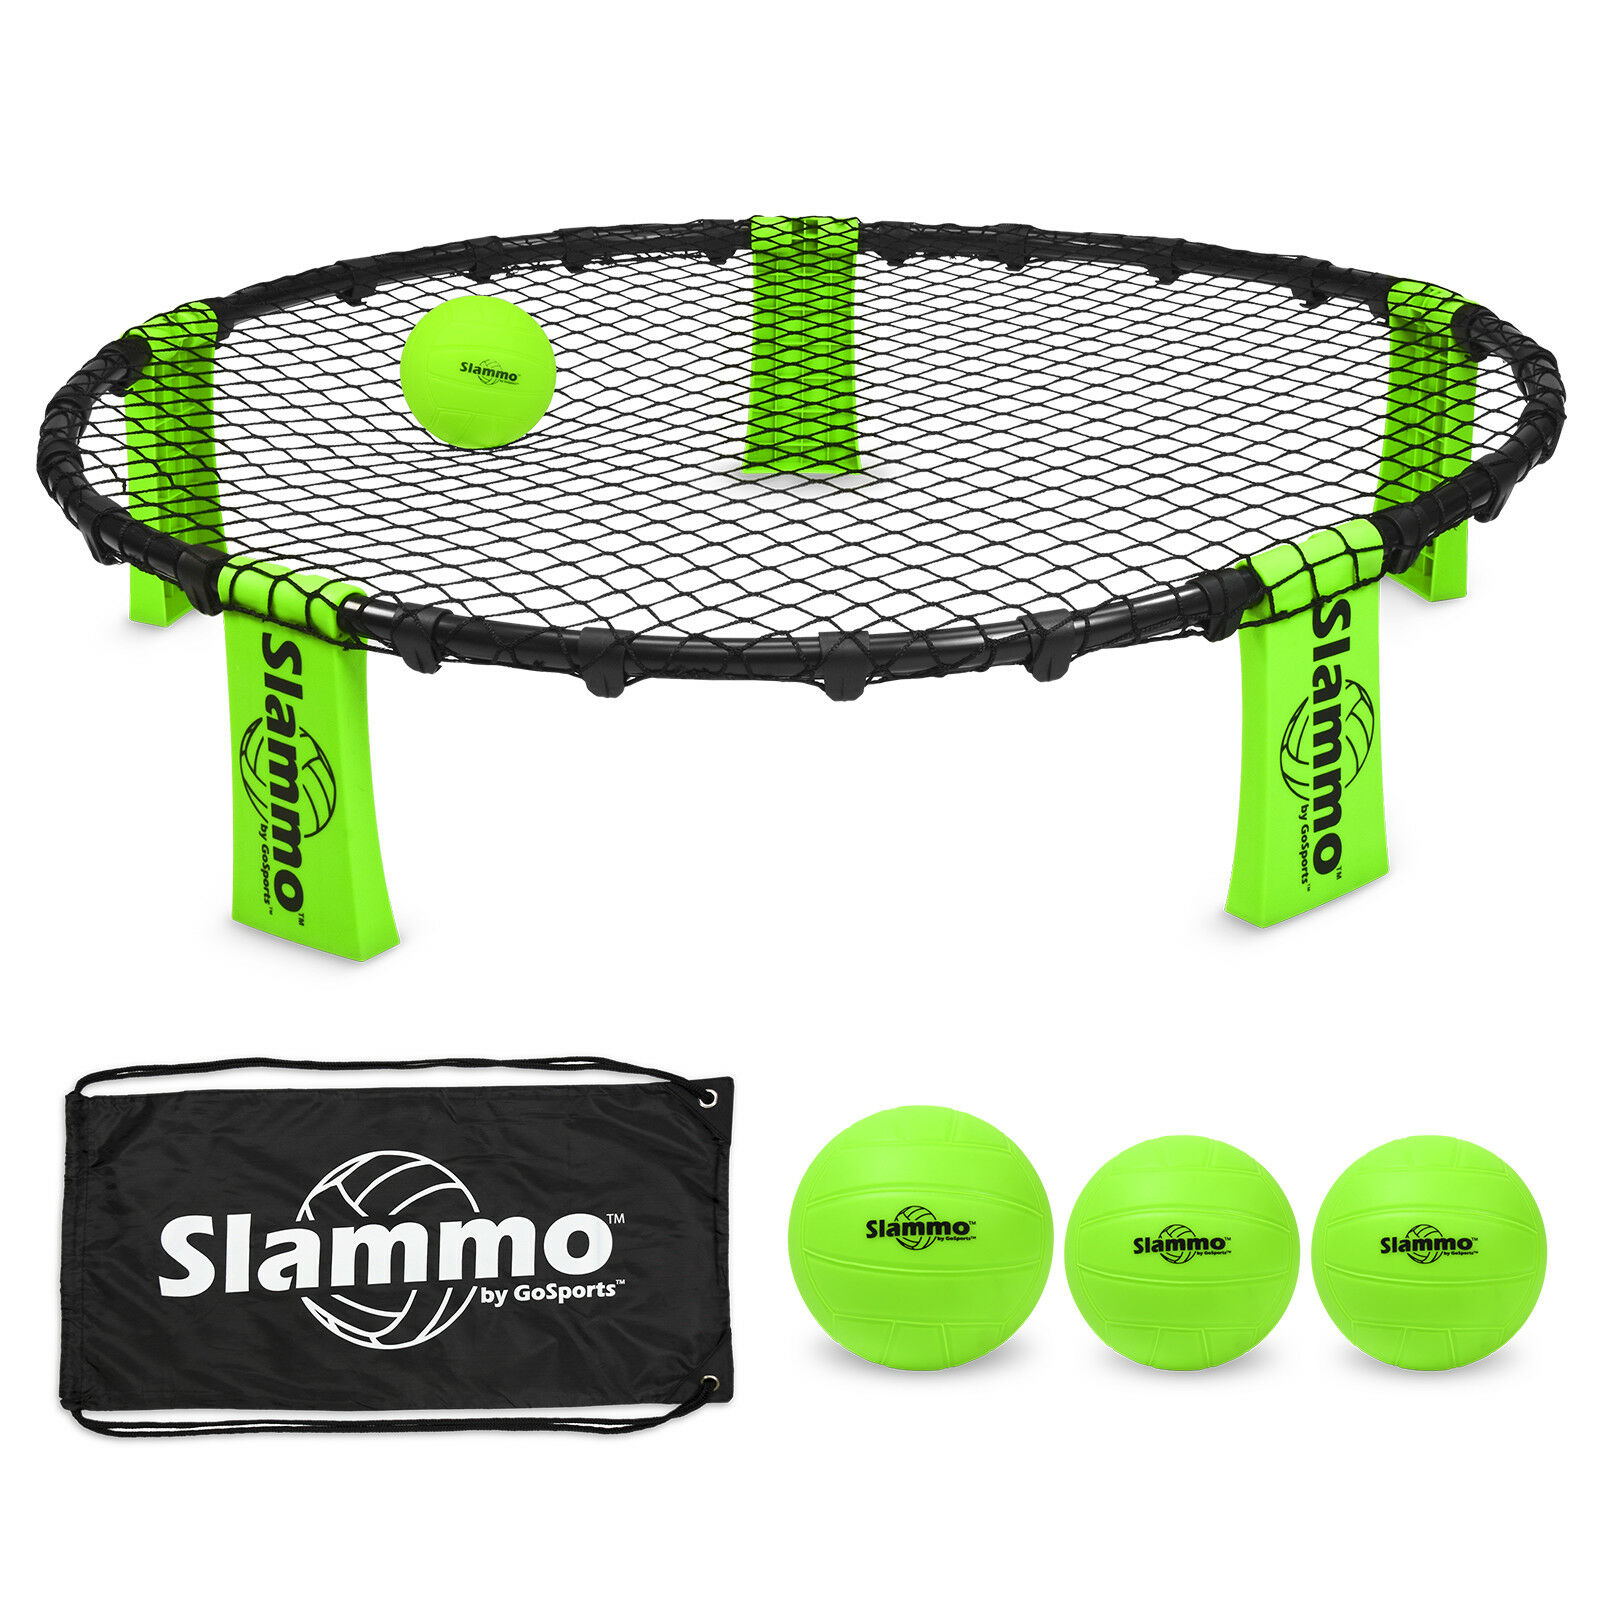 GoSports Slammo™ 2-on-2 Four Square meets Volleyball